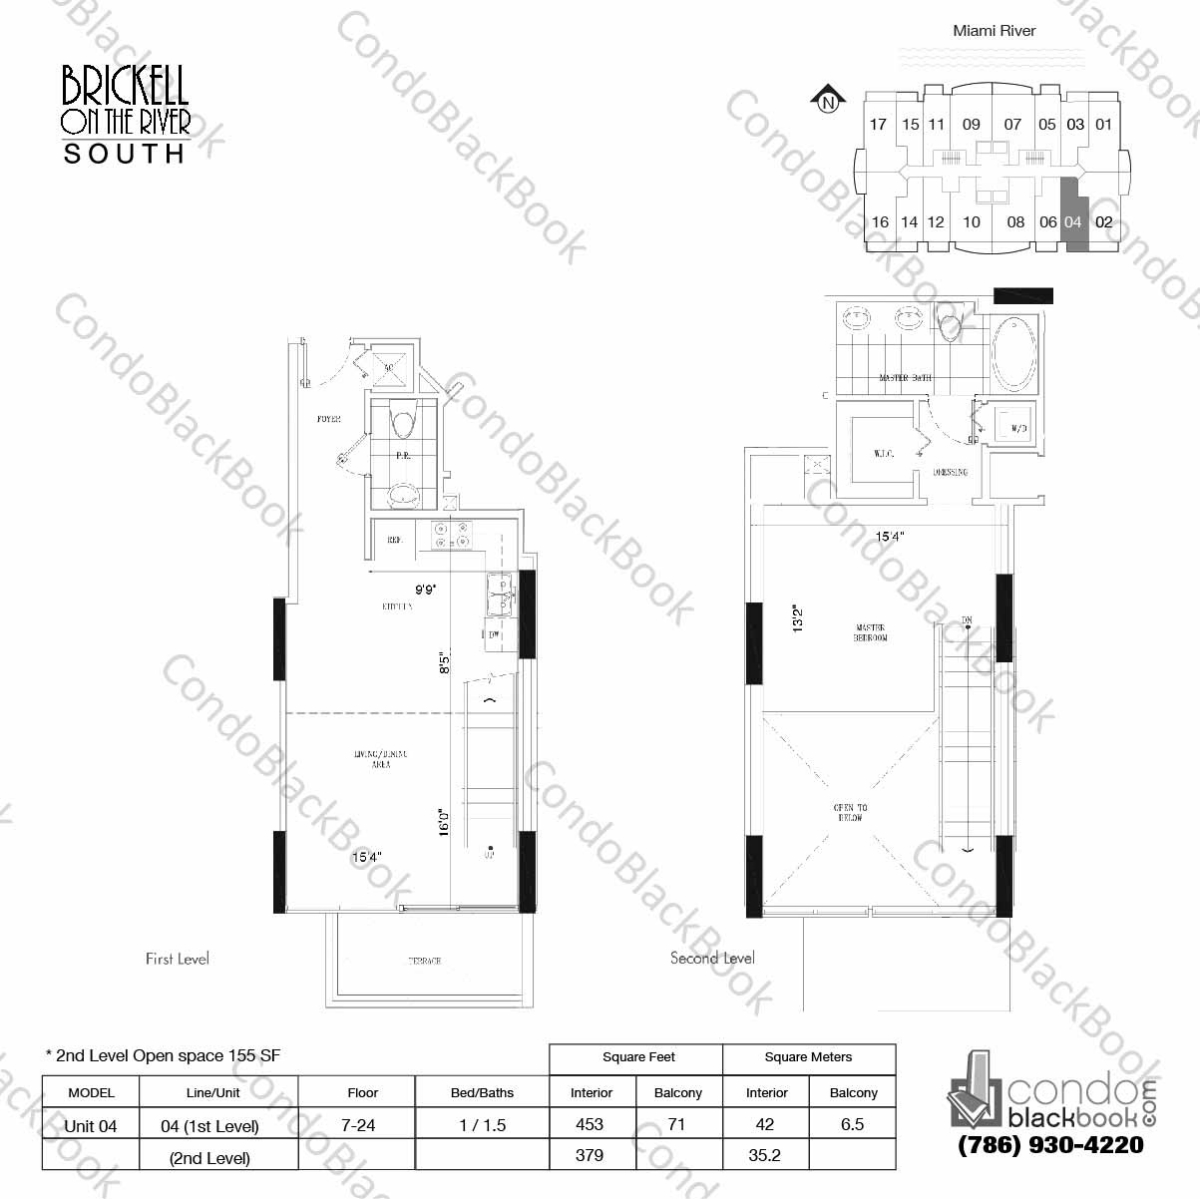 Floor plan for Brickell on the River North Brickell Miami, model Unit 04, line 04, 1/1.5 bedrooms, 832 sq ft